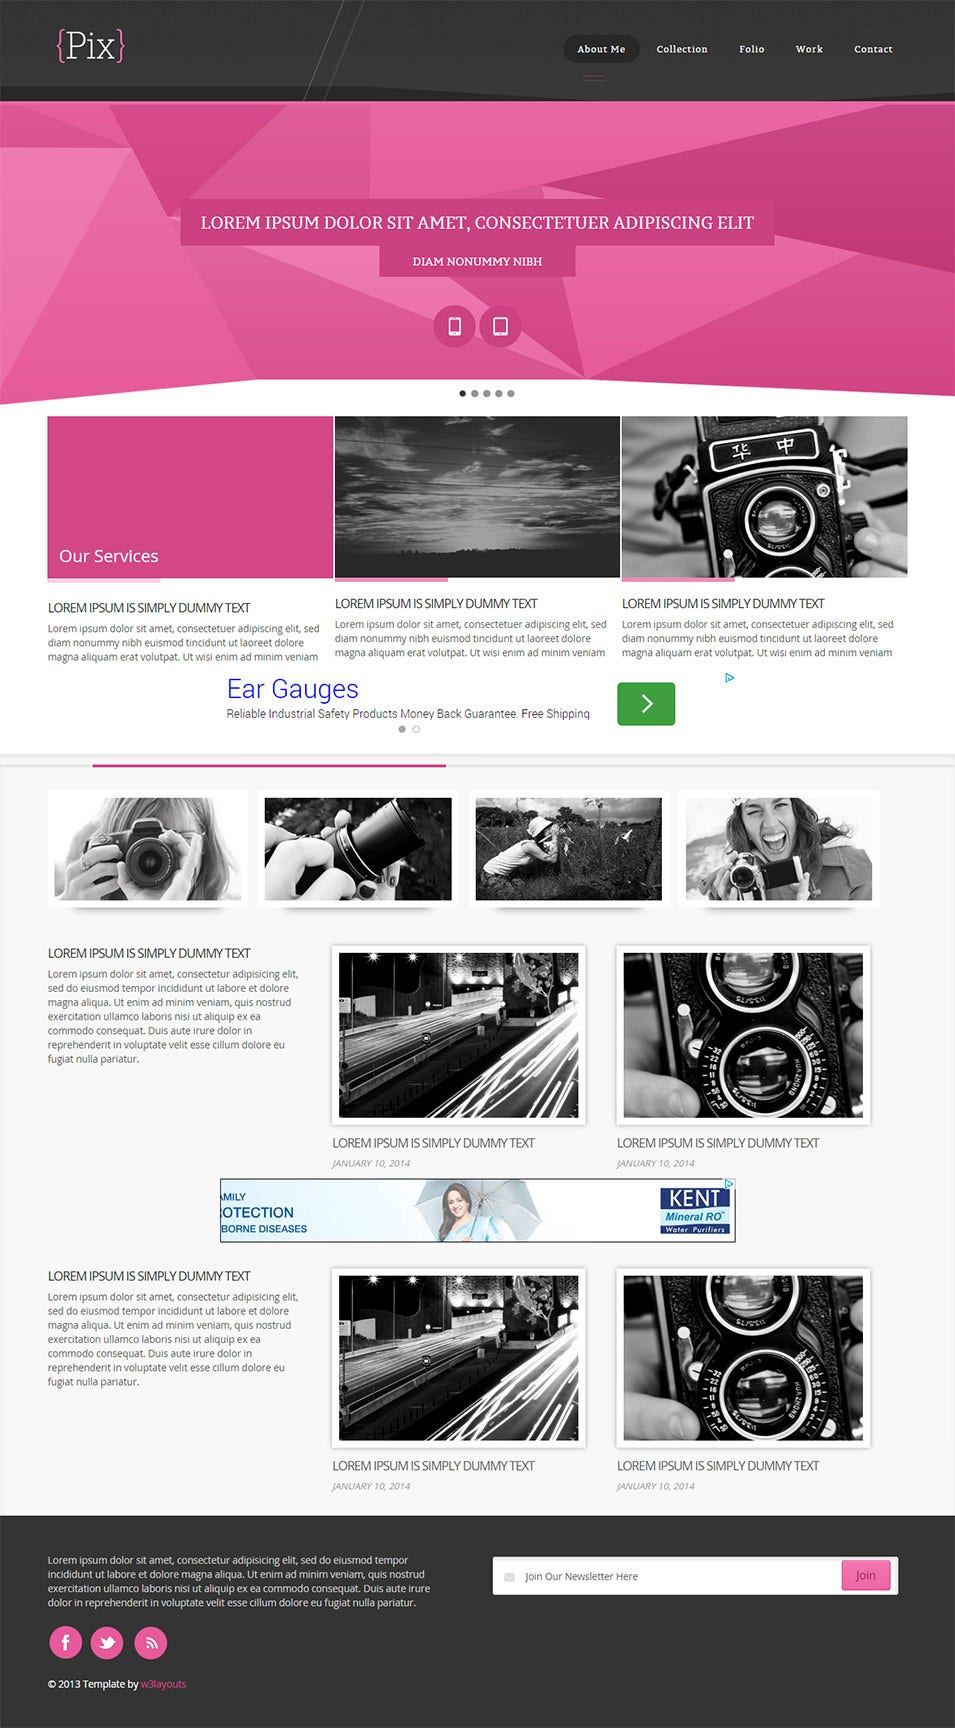 free pix website template home w3layouts